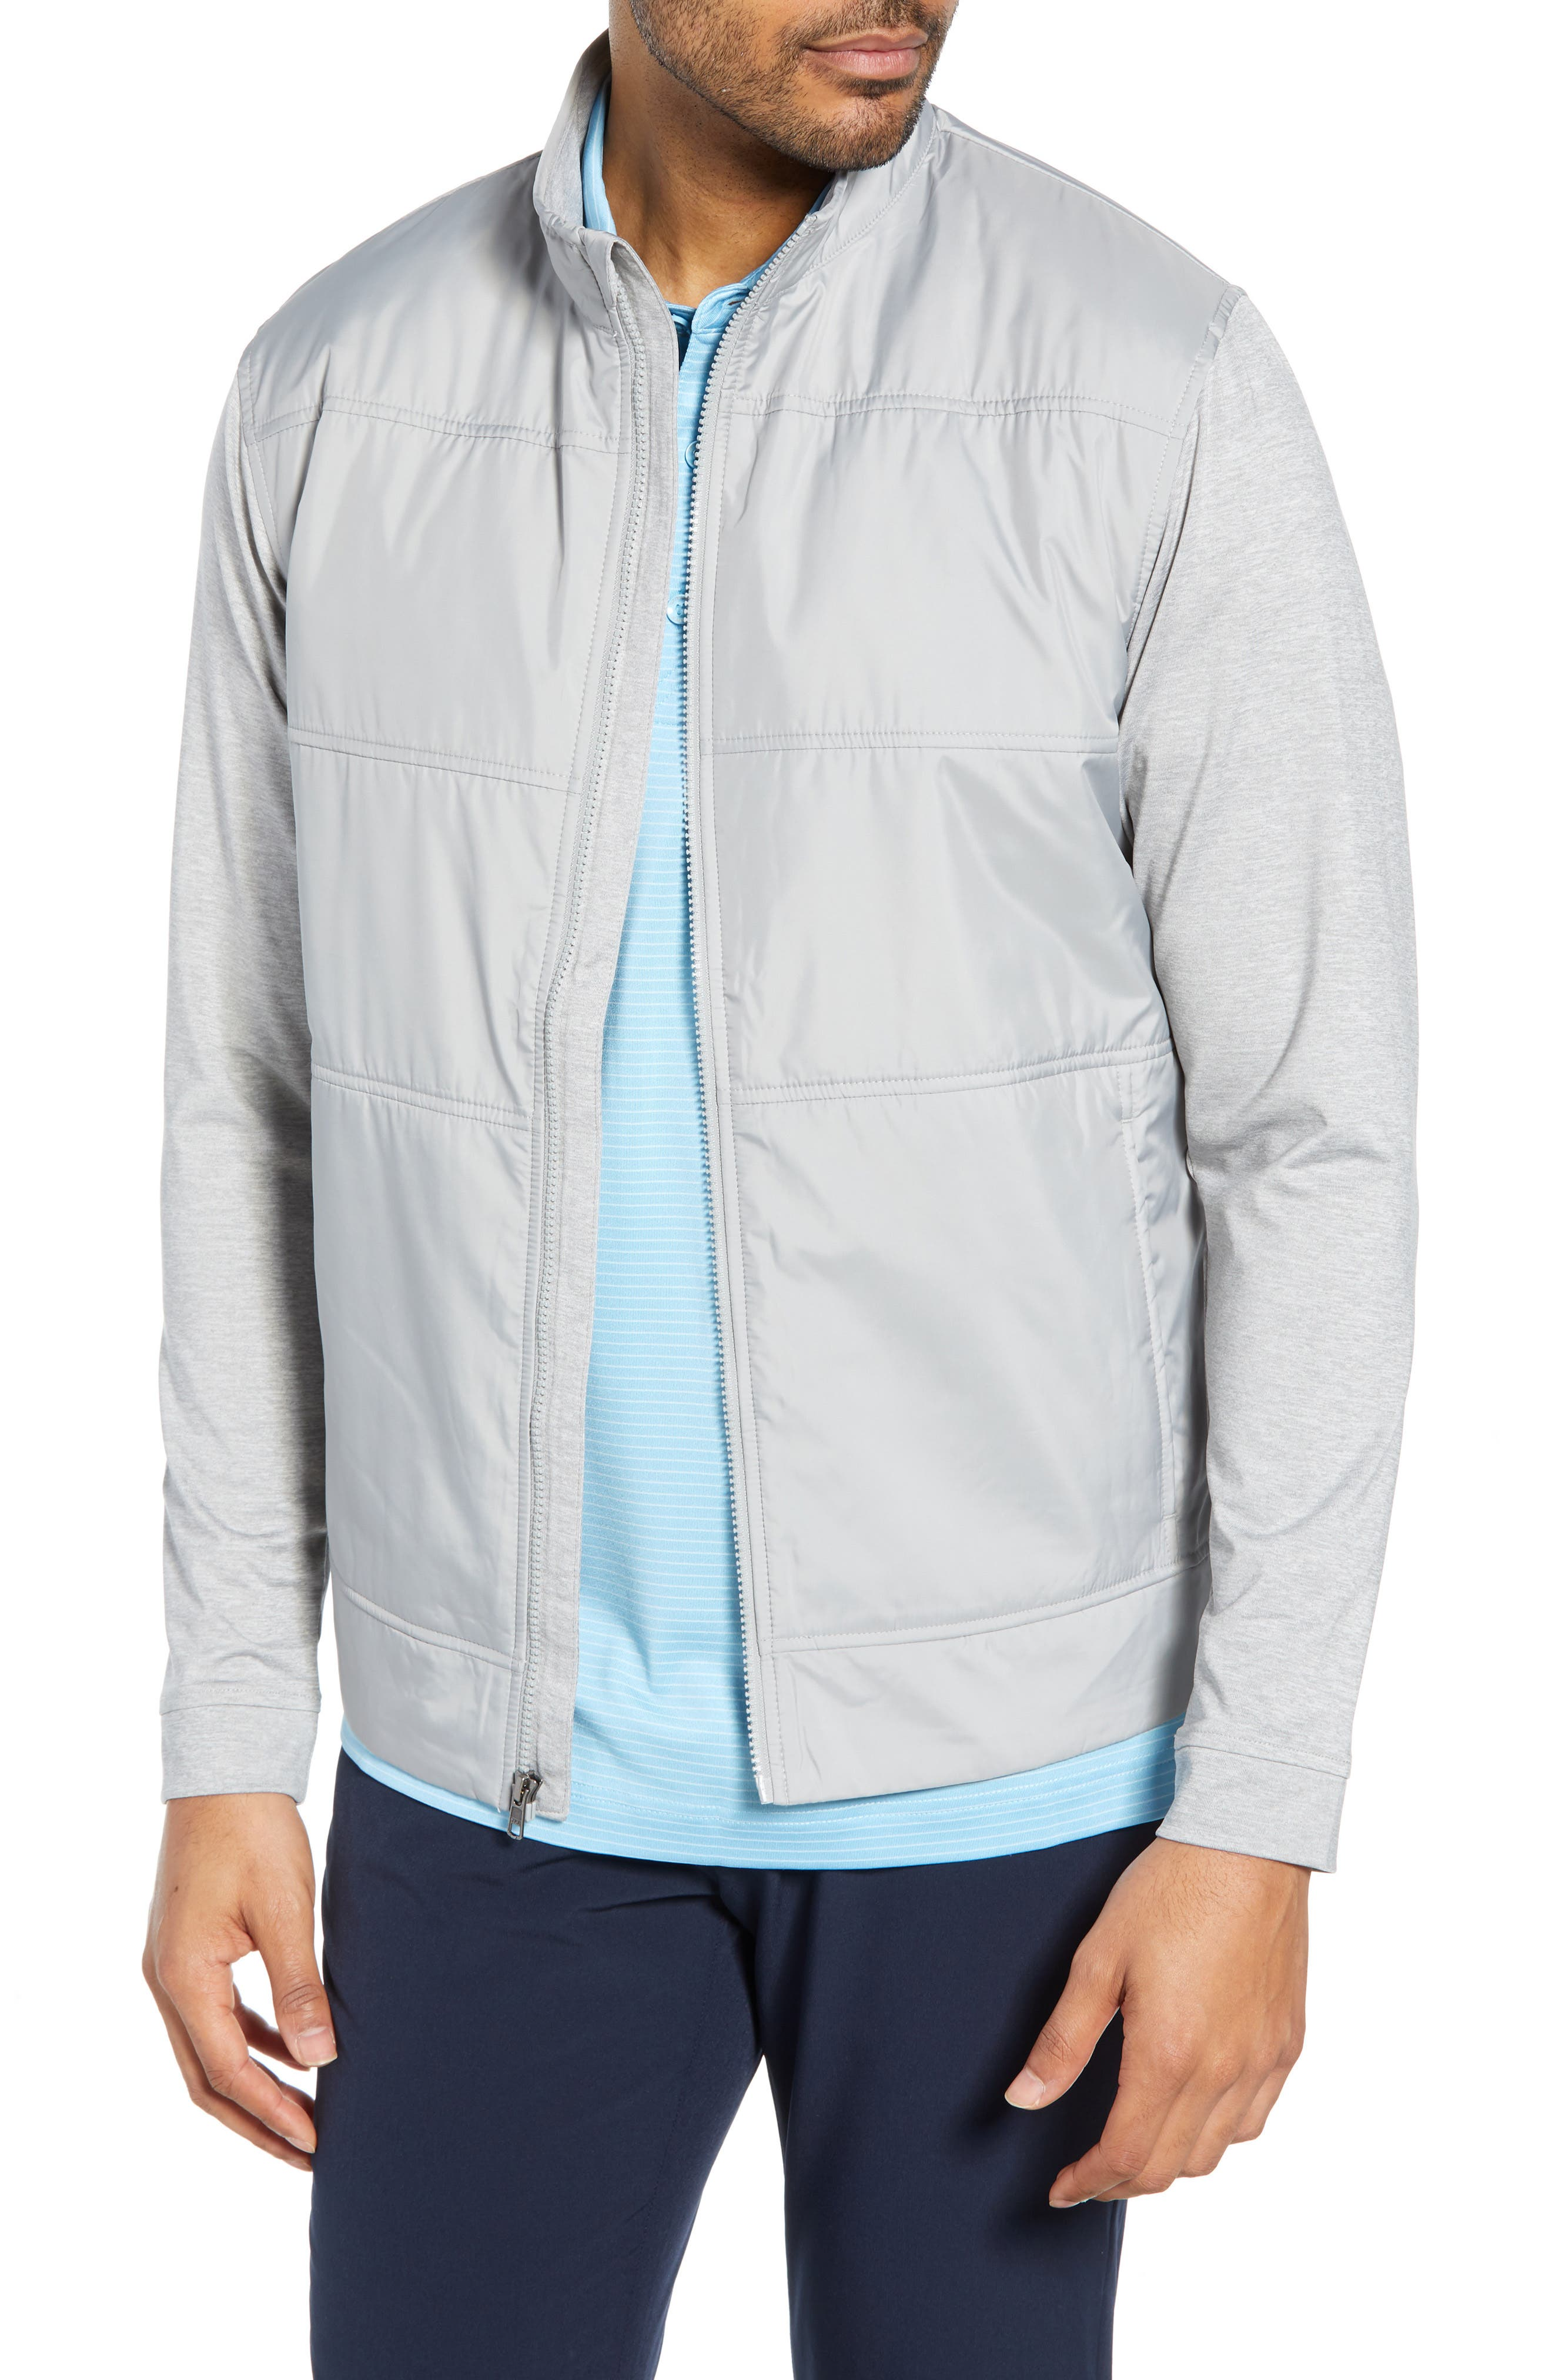 Stealth Classic Jacket